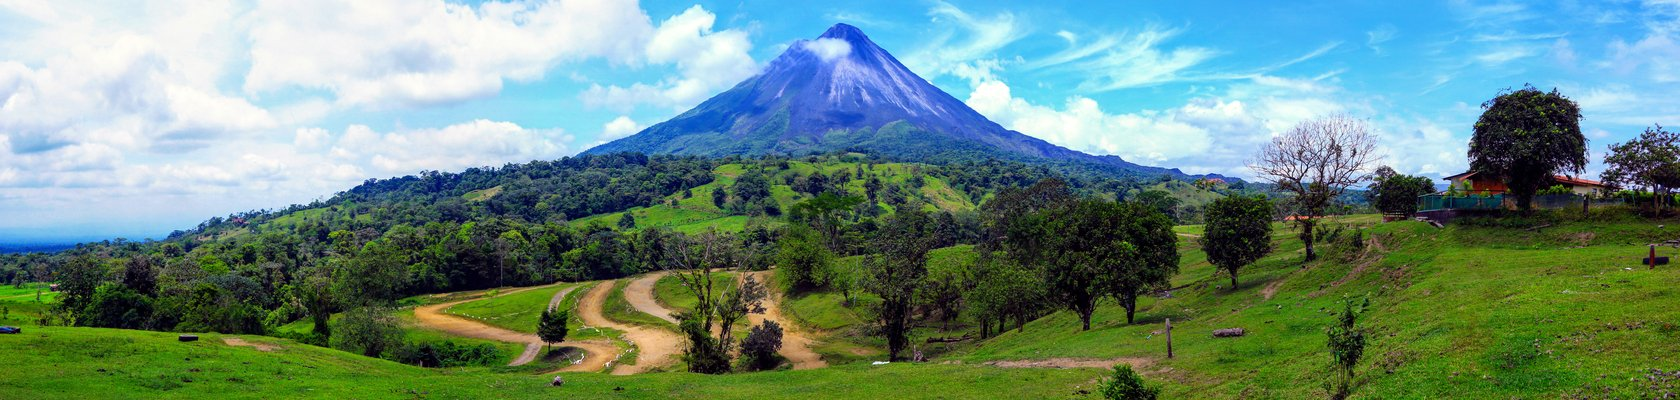 Nationaal Park Volcán Arenal